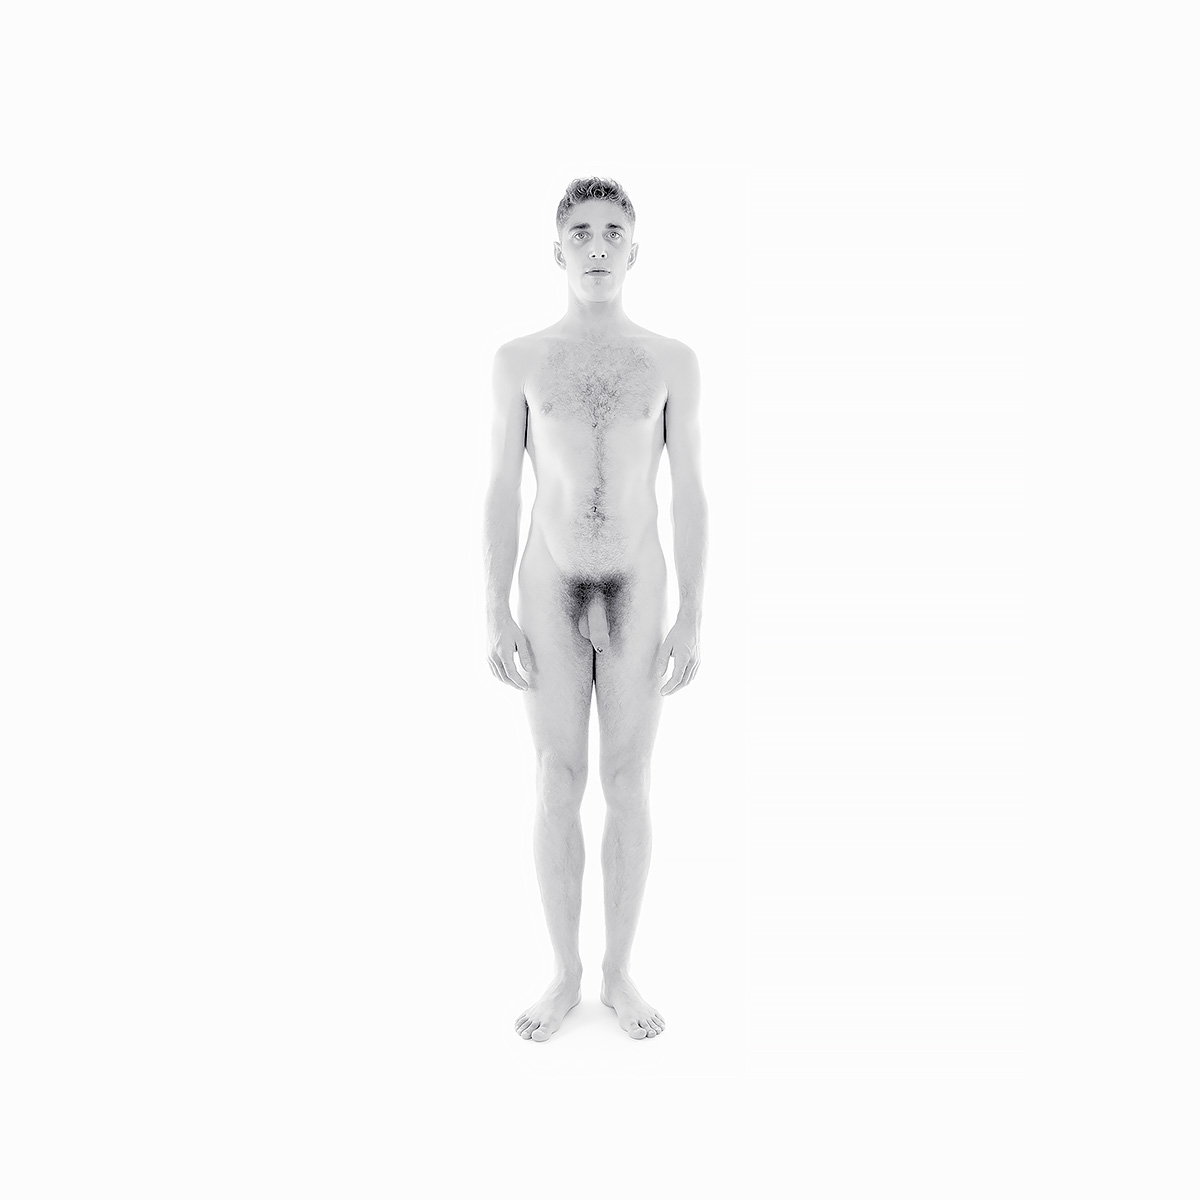 2018 The last HomoSapiens Bodies 001 tty art 1200 - 2018 - The last HomoSapiens. Bodies